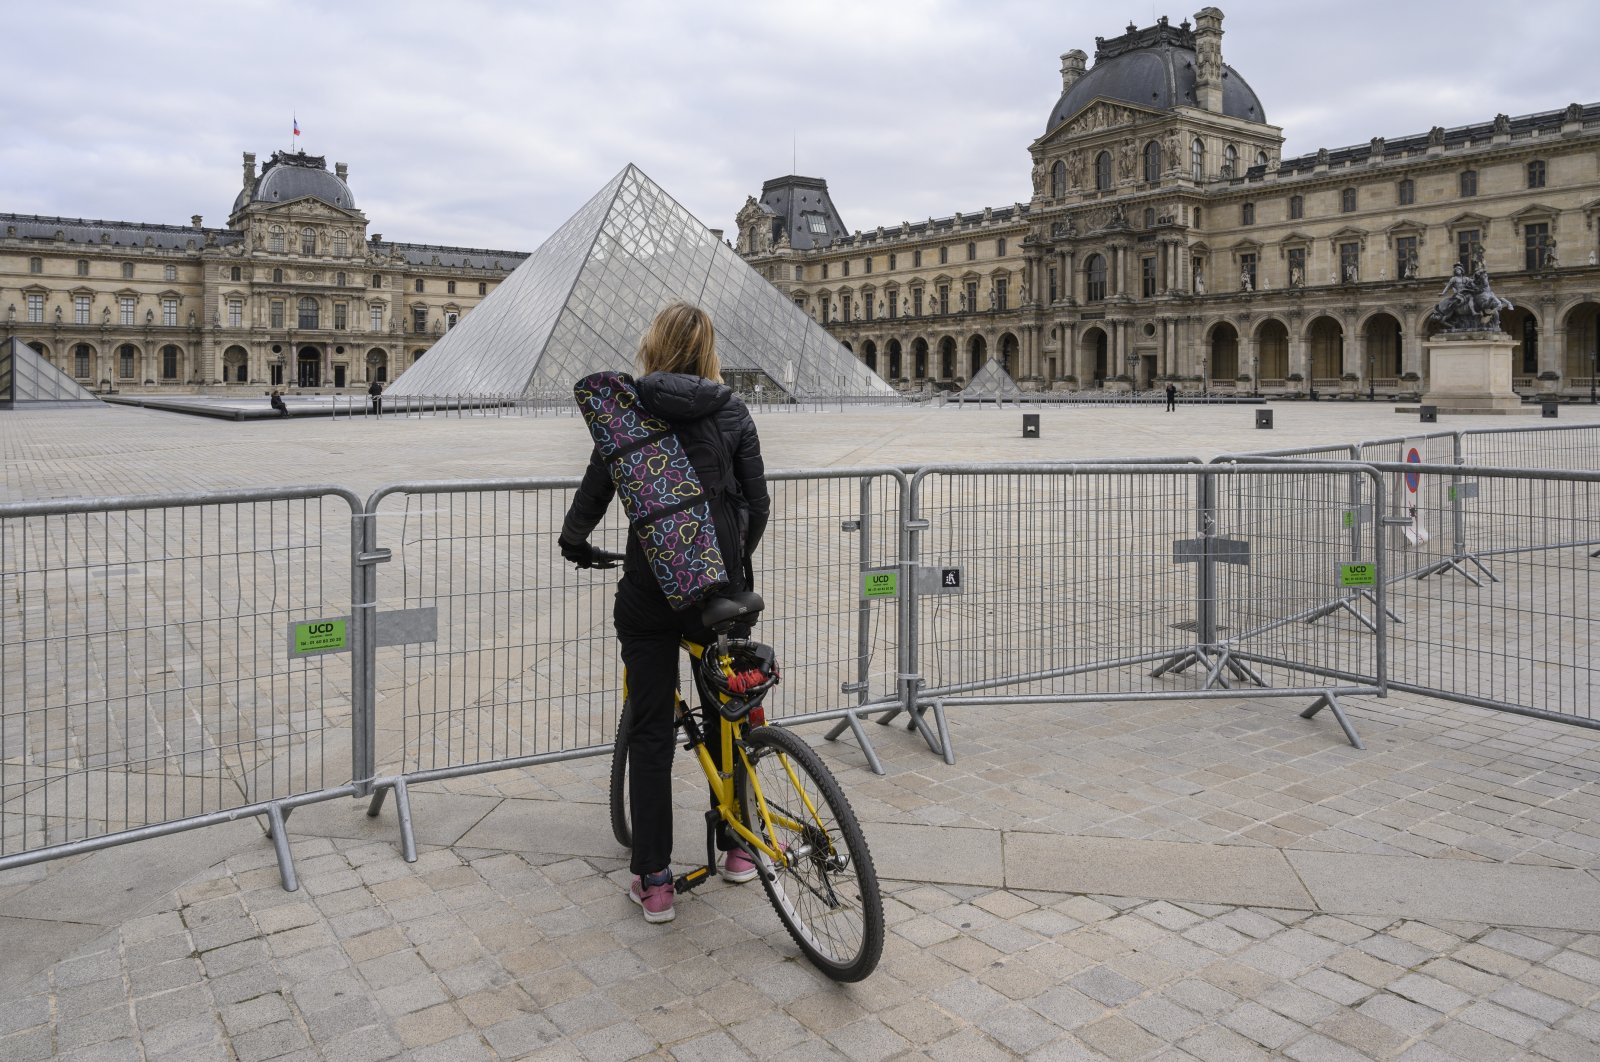 The Louvre is seen cordoned off as the COVID-19 lockdown in France closes the museum to visitors, Paris, France, March 22, 2021. (Photo by Julien Mattia via AA)